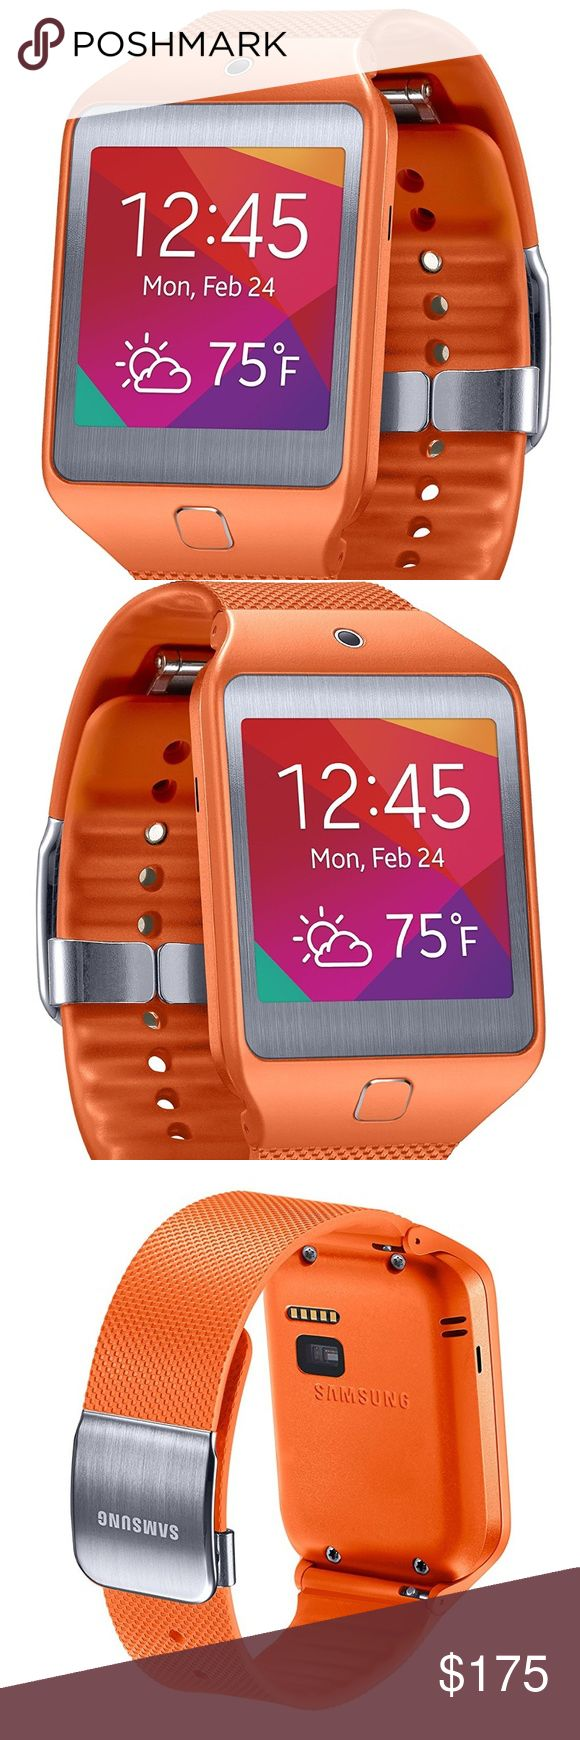 Brand New Samsung Gear 2 Neo Smart Watch Unisex Brand New Samsung Gear 2 Neo Smartwatch (Orange. This device can make and receive calls, monitor your heart rate, and create a personalized fitness motivator. Plus you can download hundreds of additional apps! Samsung Accessories Watches